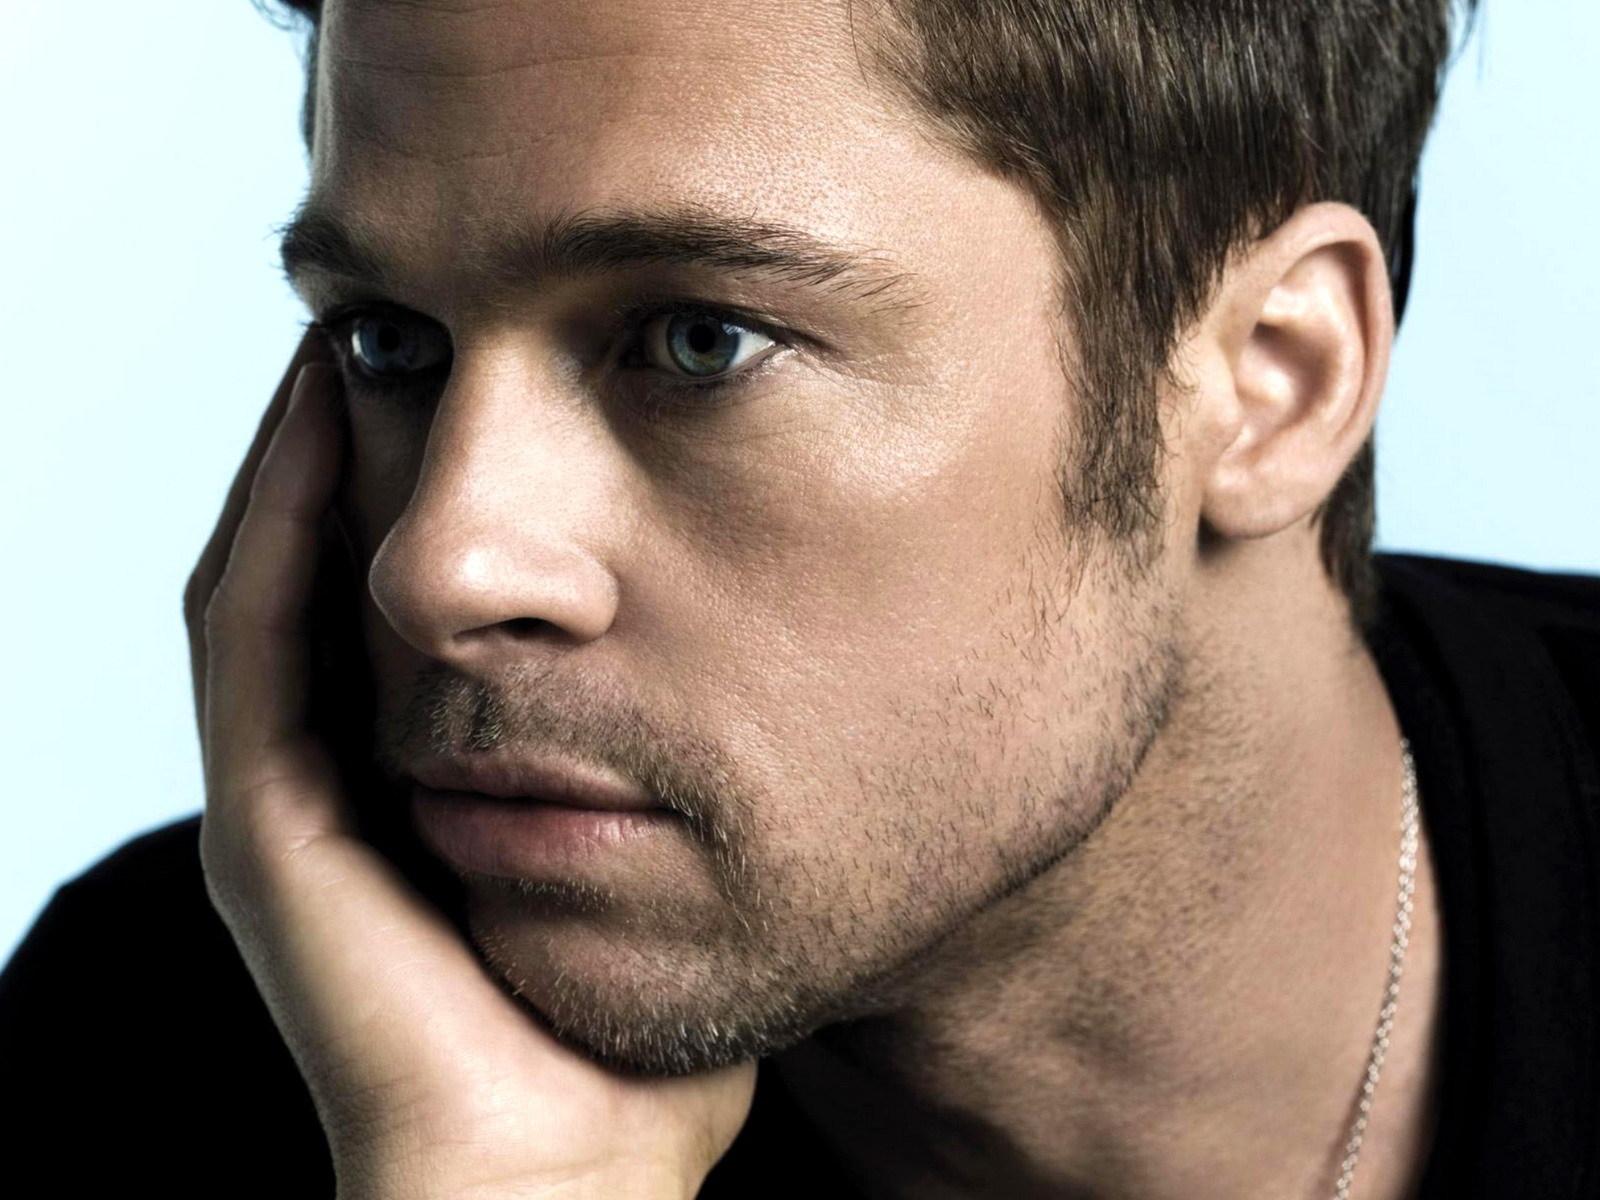 Brad Pitt Wallpapers High Resolution and Quality Download 1600x1200